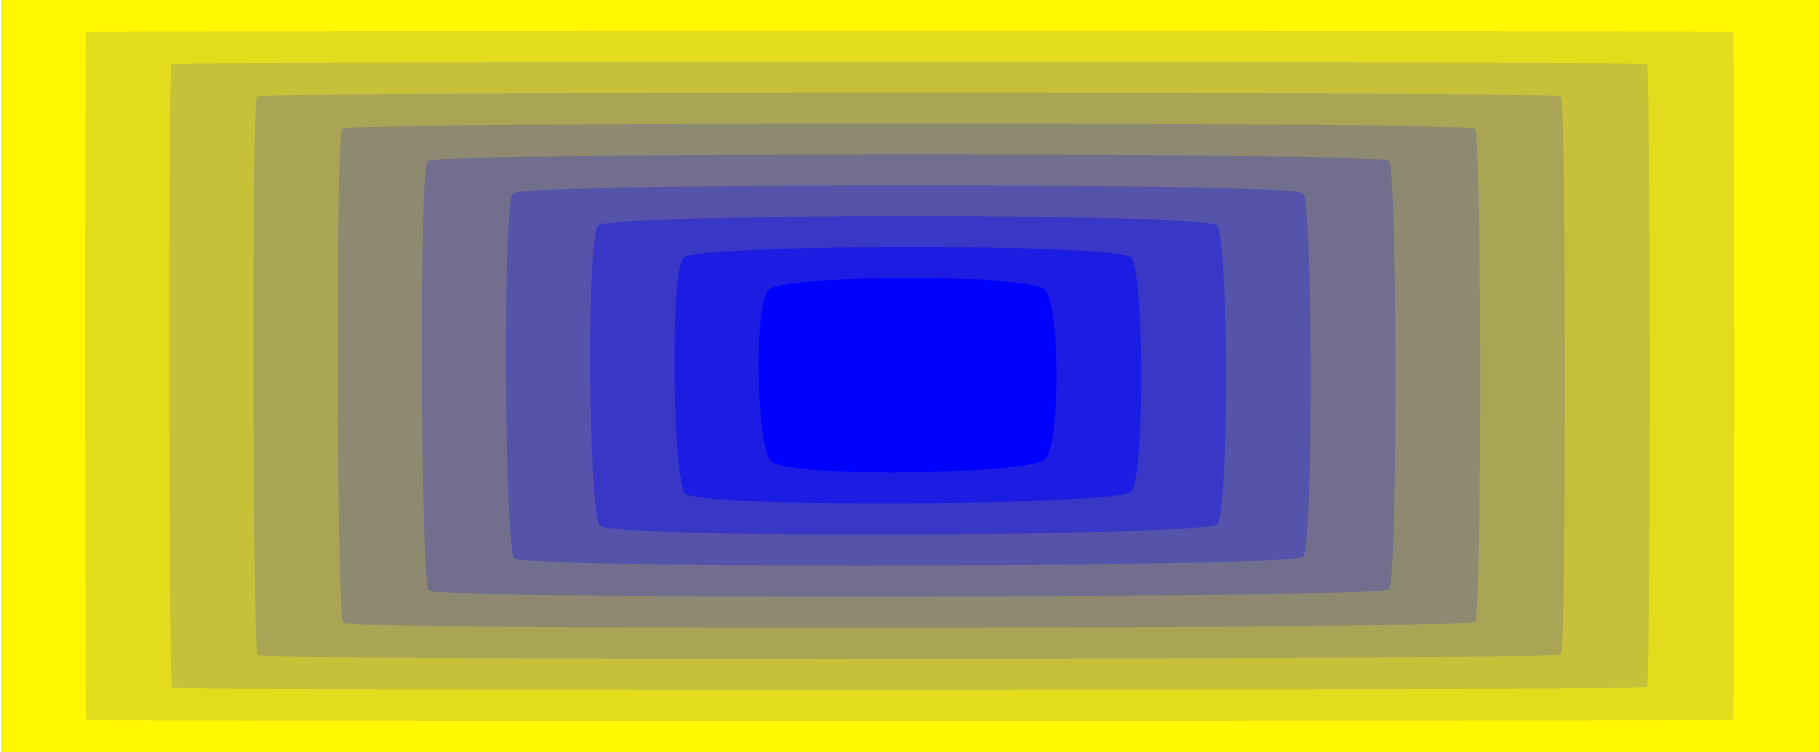 Blue retreating away from you on a yellow screen